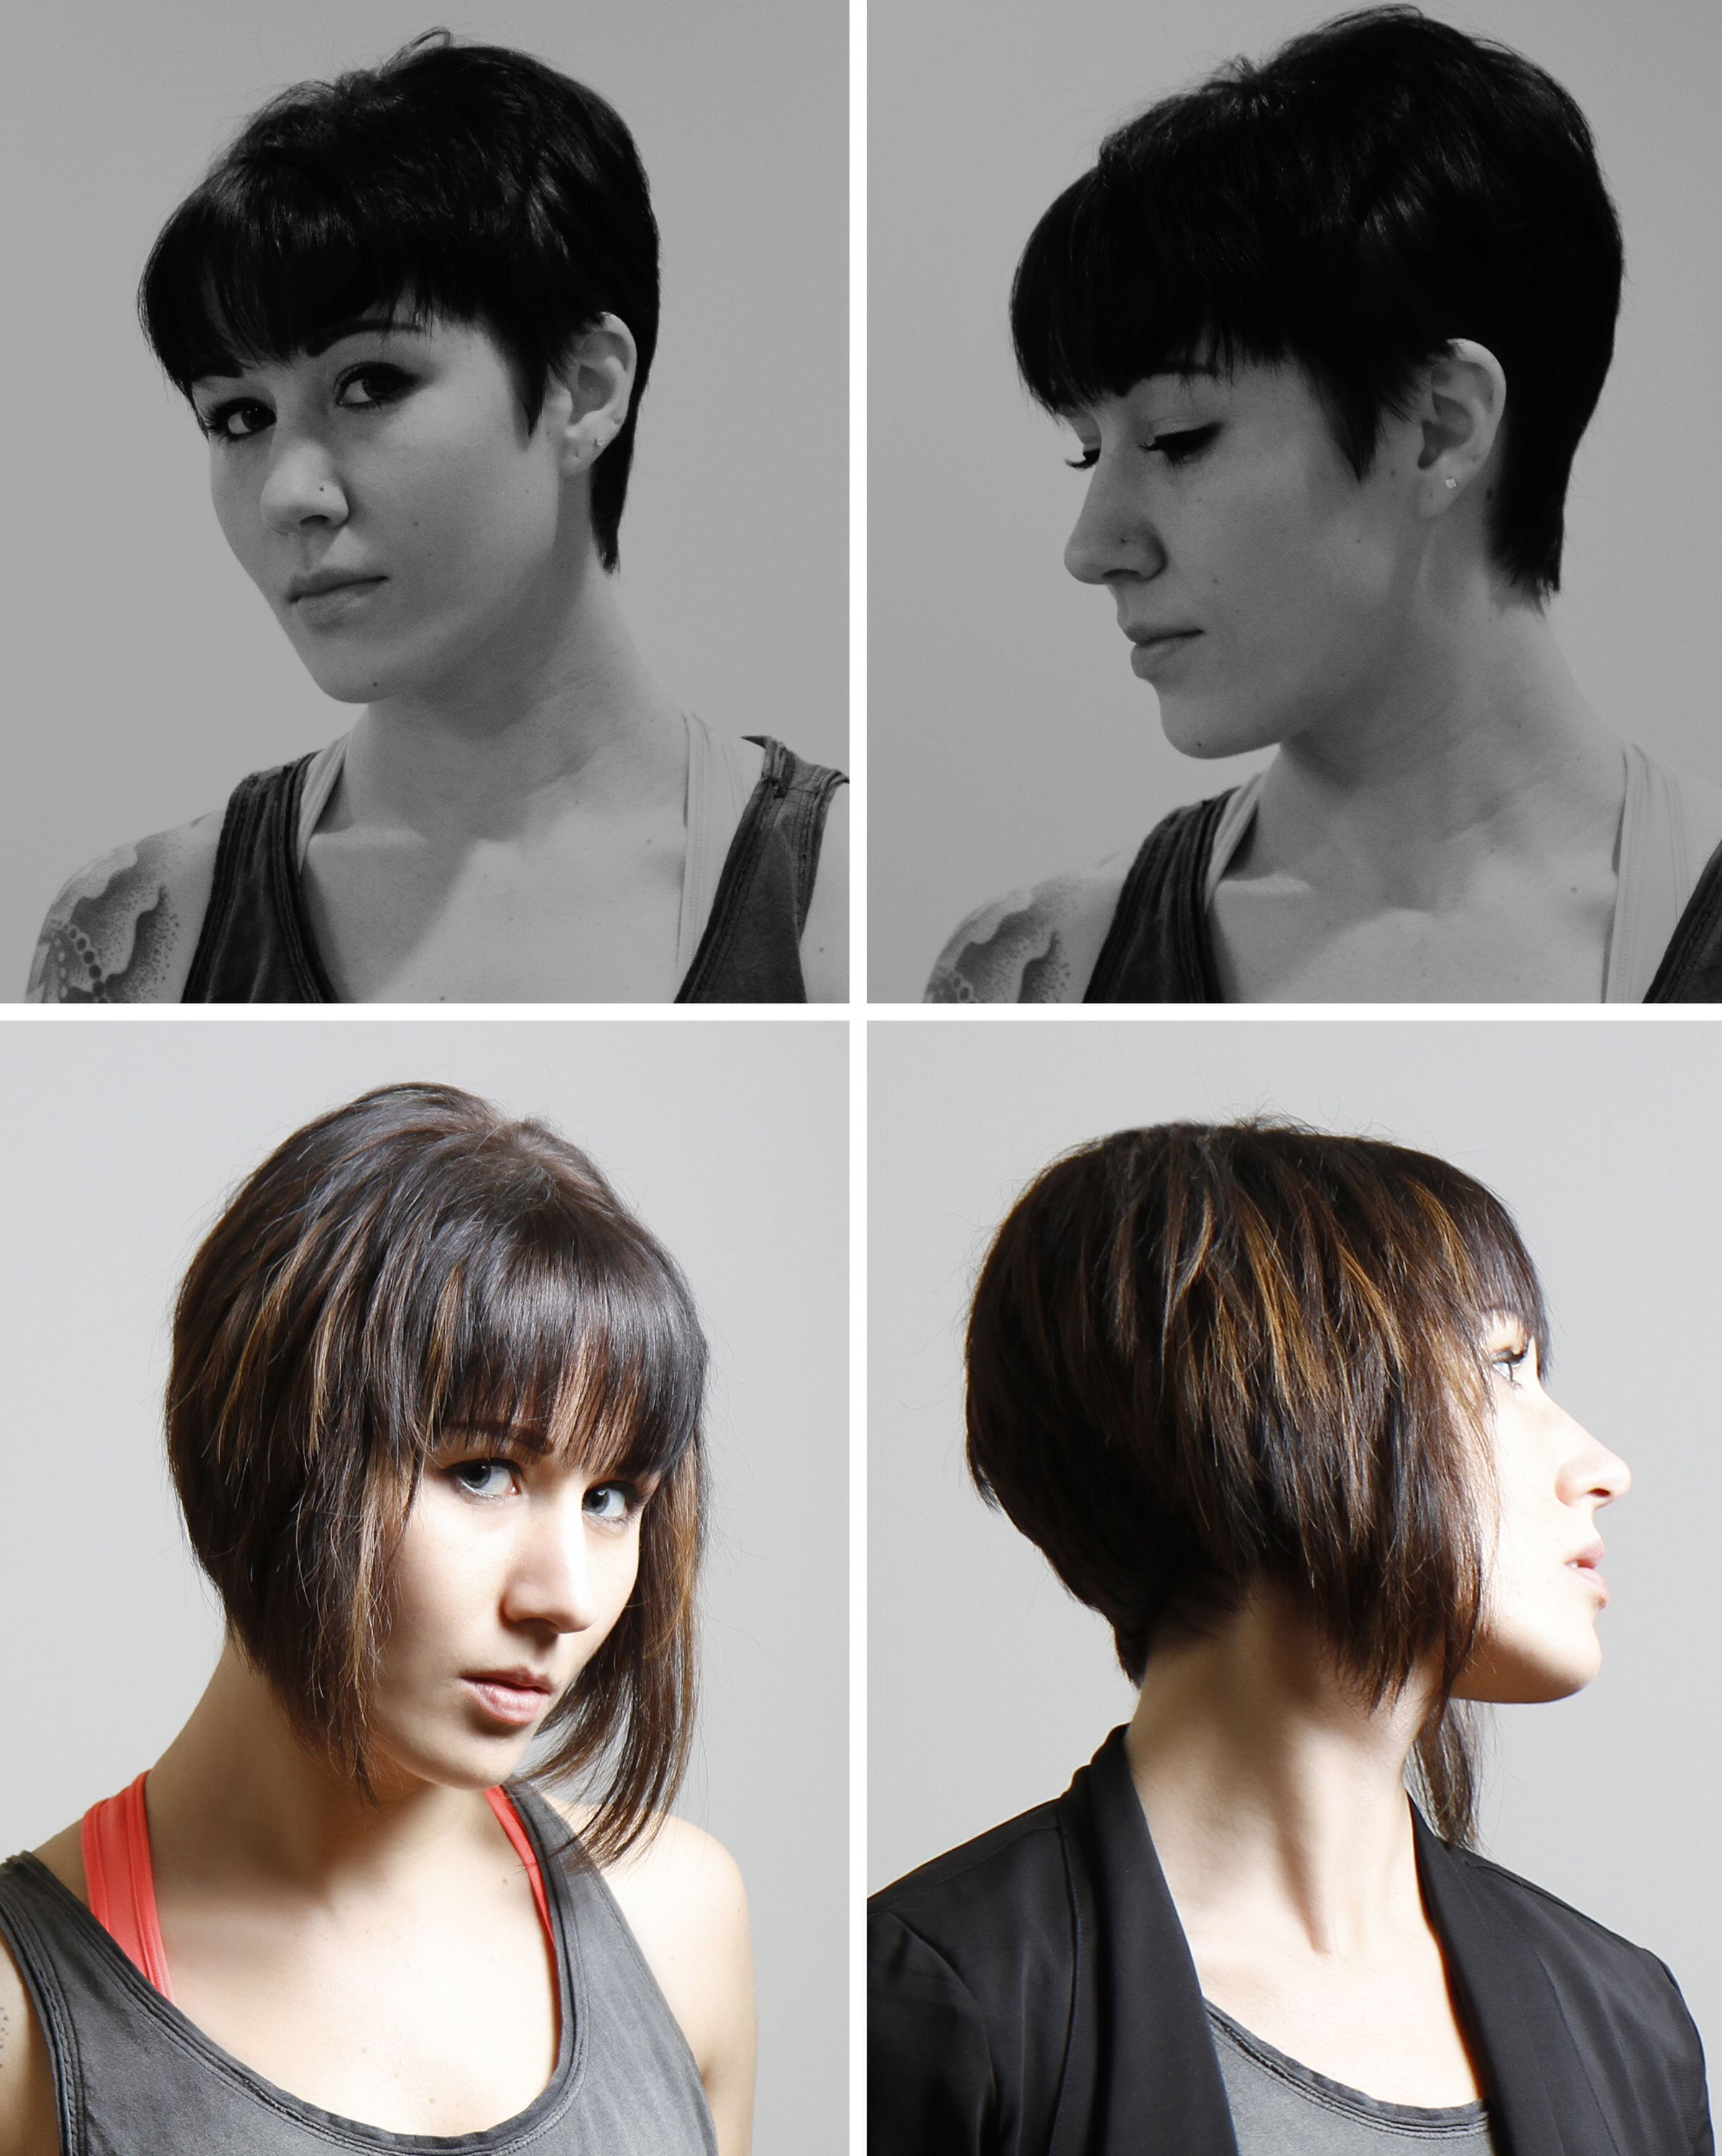 Top Before Bottom After Pixie To Bob Transformation Hair Extensions For Short Hair Hair Extensions Tutorial Hair Today